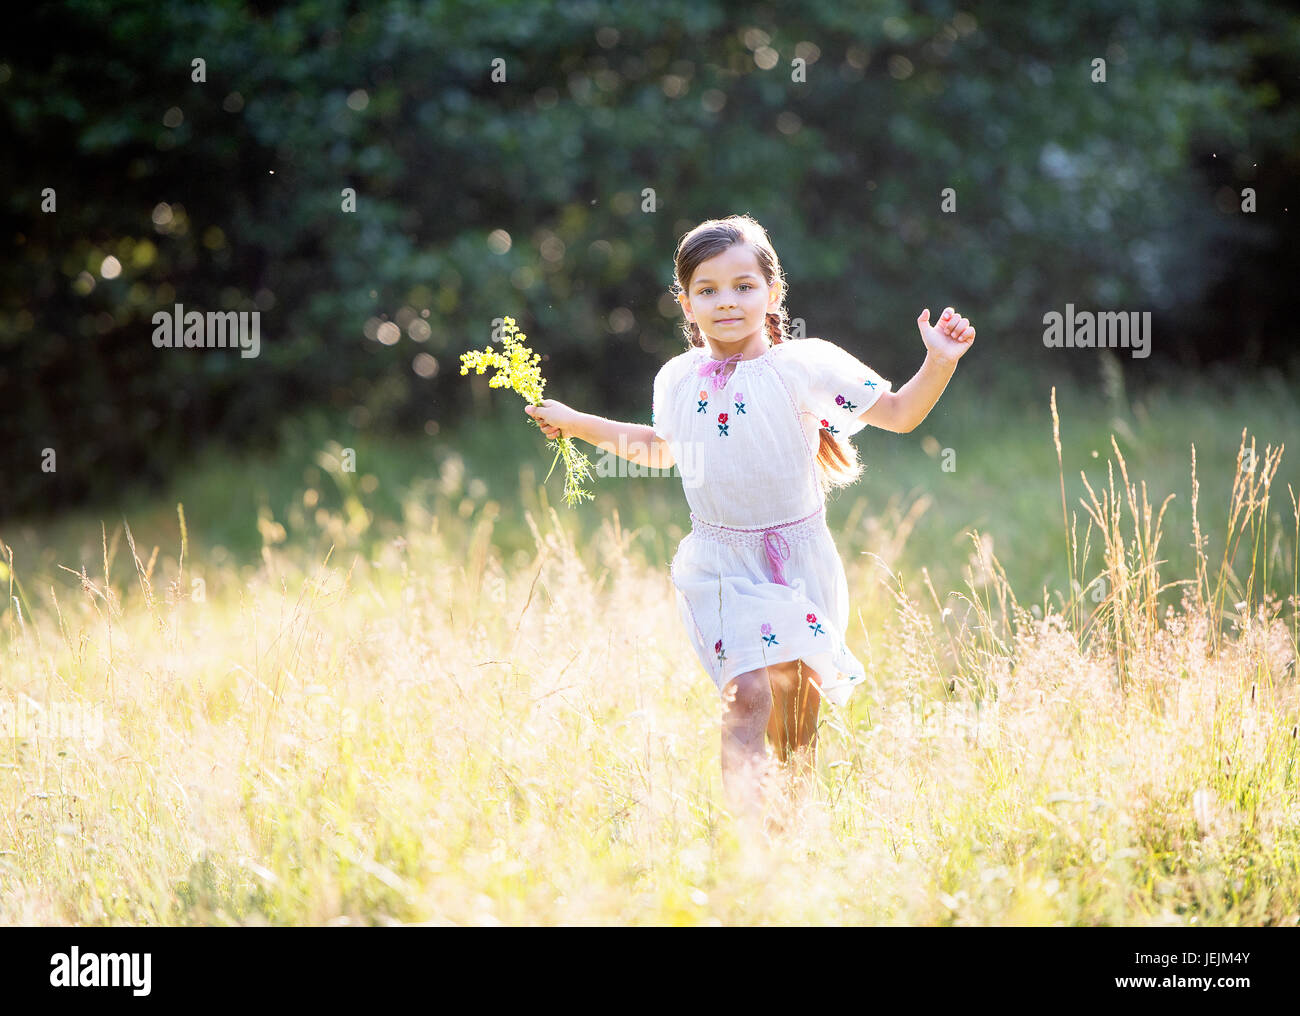 bd43abaf4d6f9 little happy girl with tight braids wearing traditional romanian blouse  running outside - Stock Image